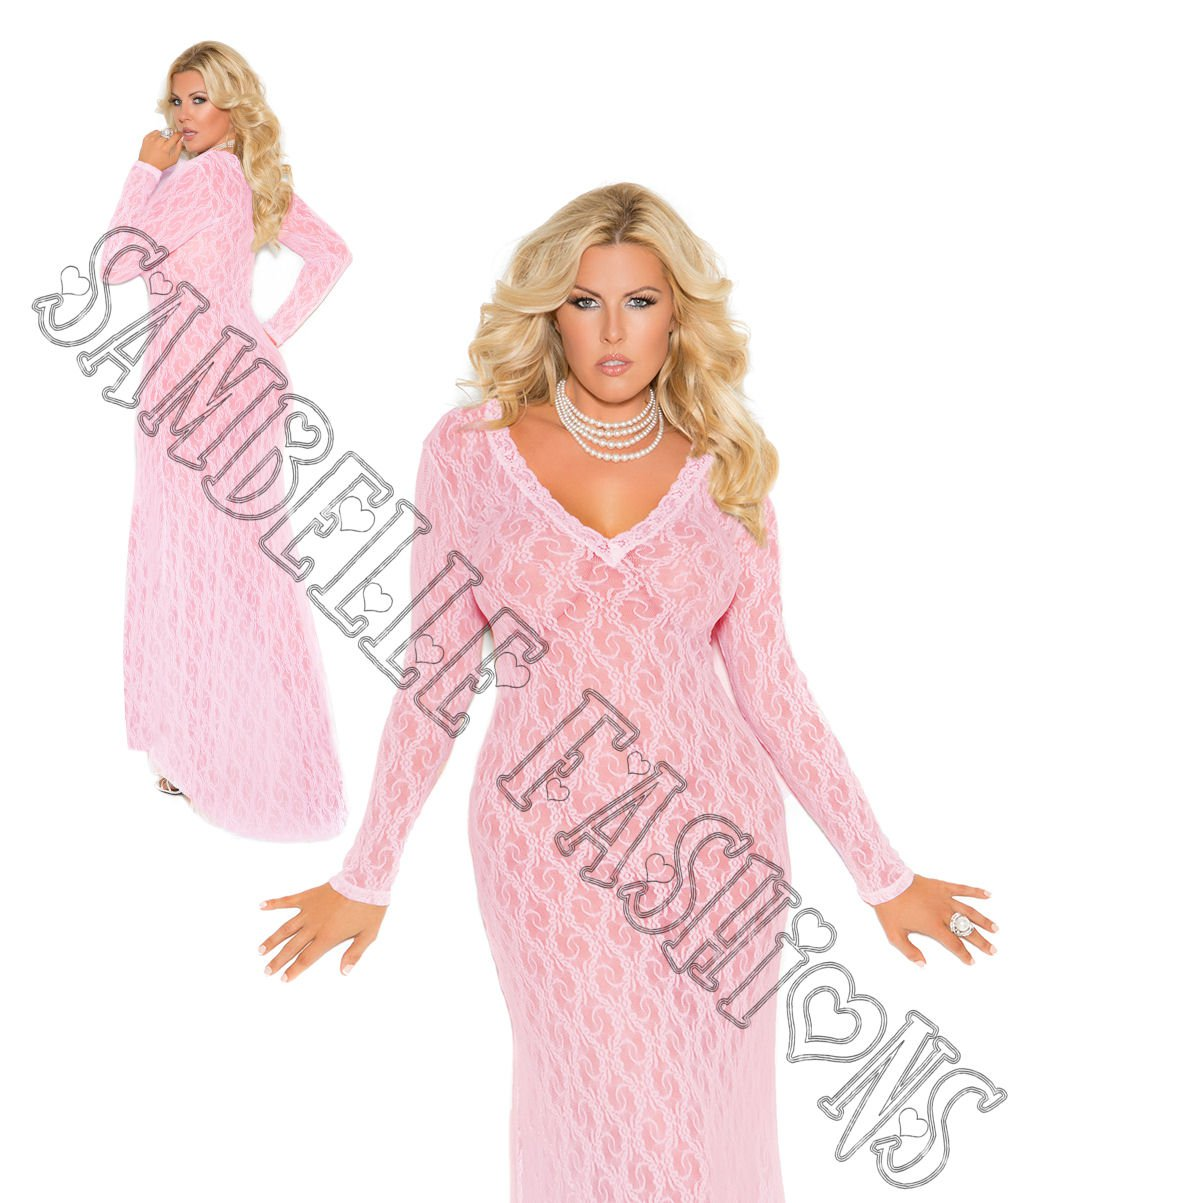 Baby Pink Long Sleeve Lace Gown - 3X